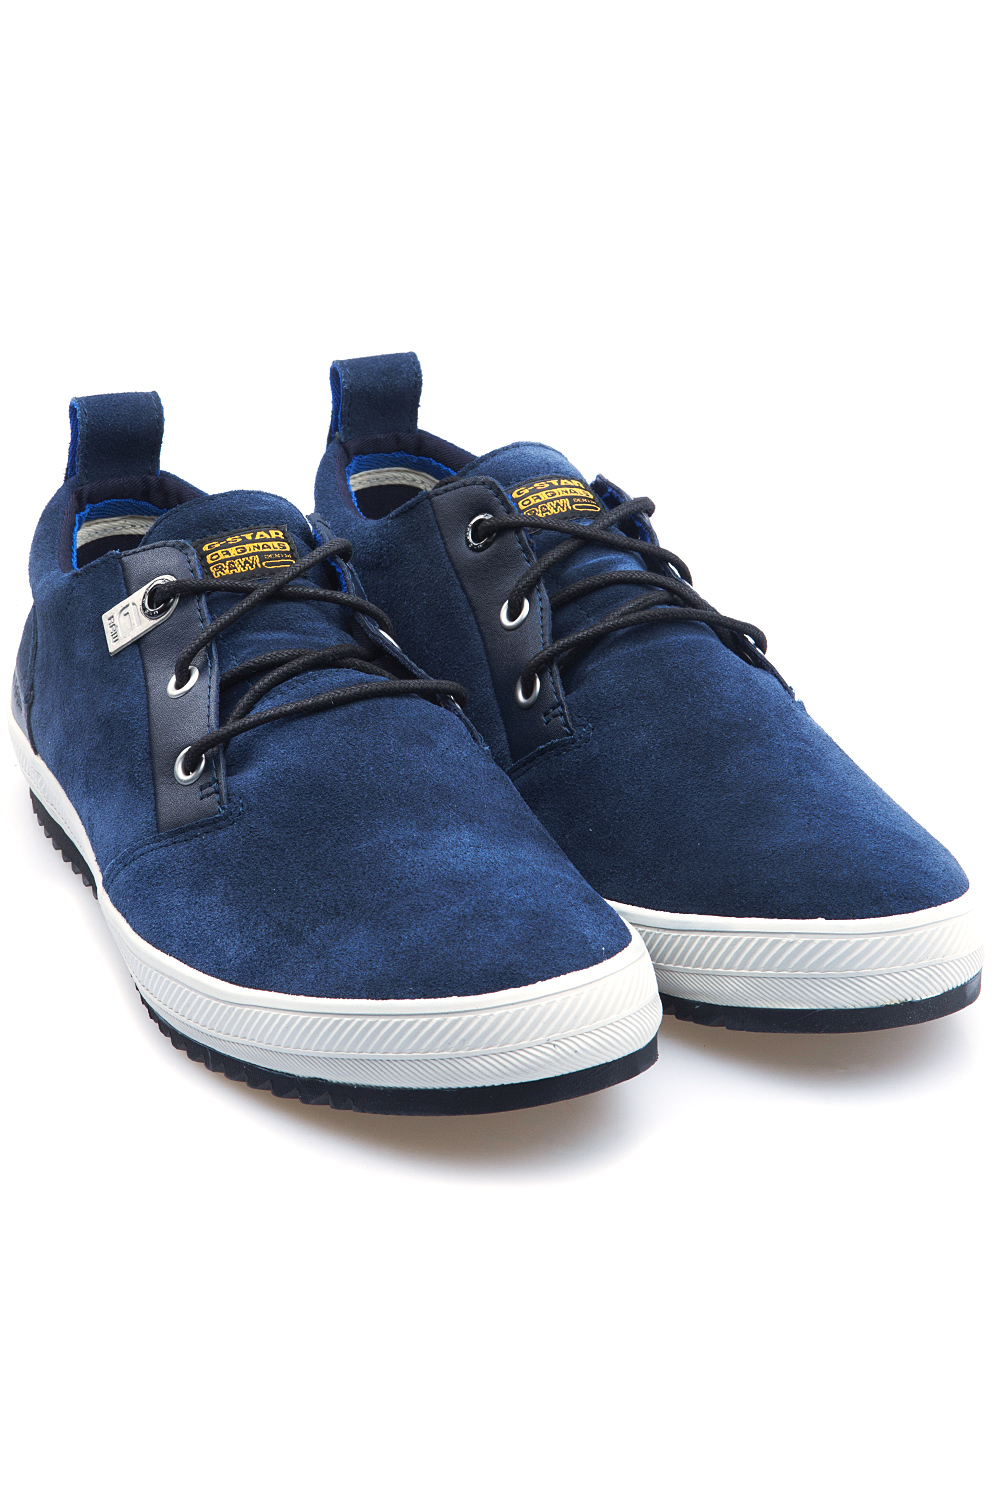 g star breaker kilby sneakers navy 365ist. Black Bedroom Furniture Sets. Home Design Ideas